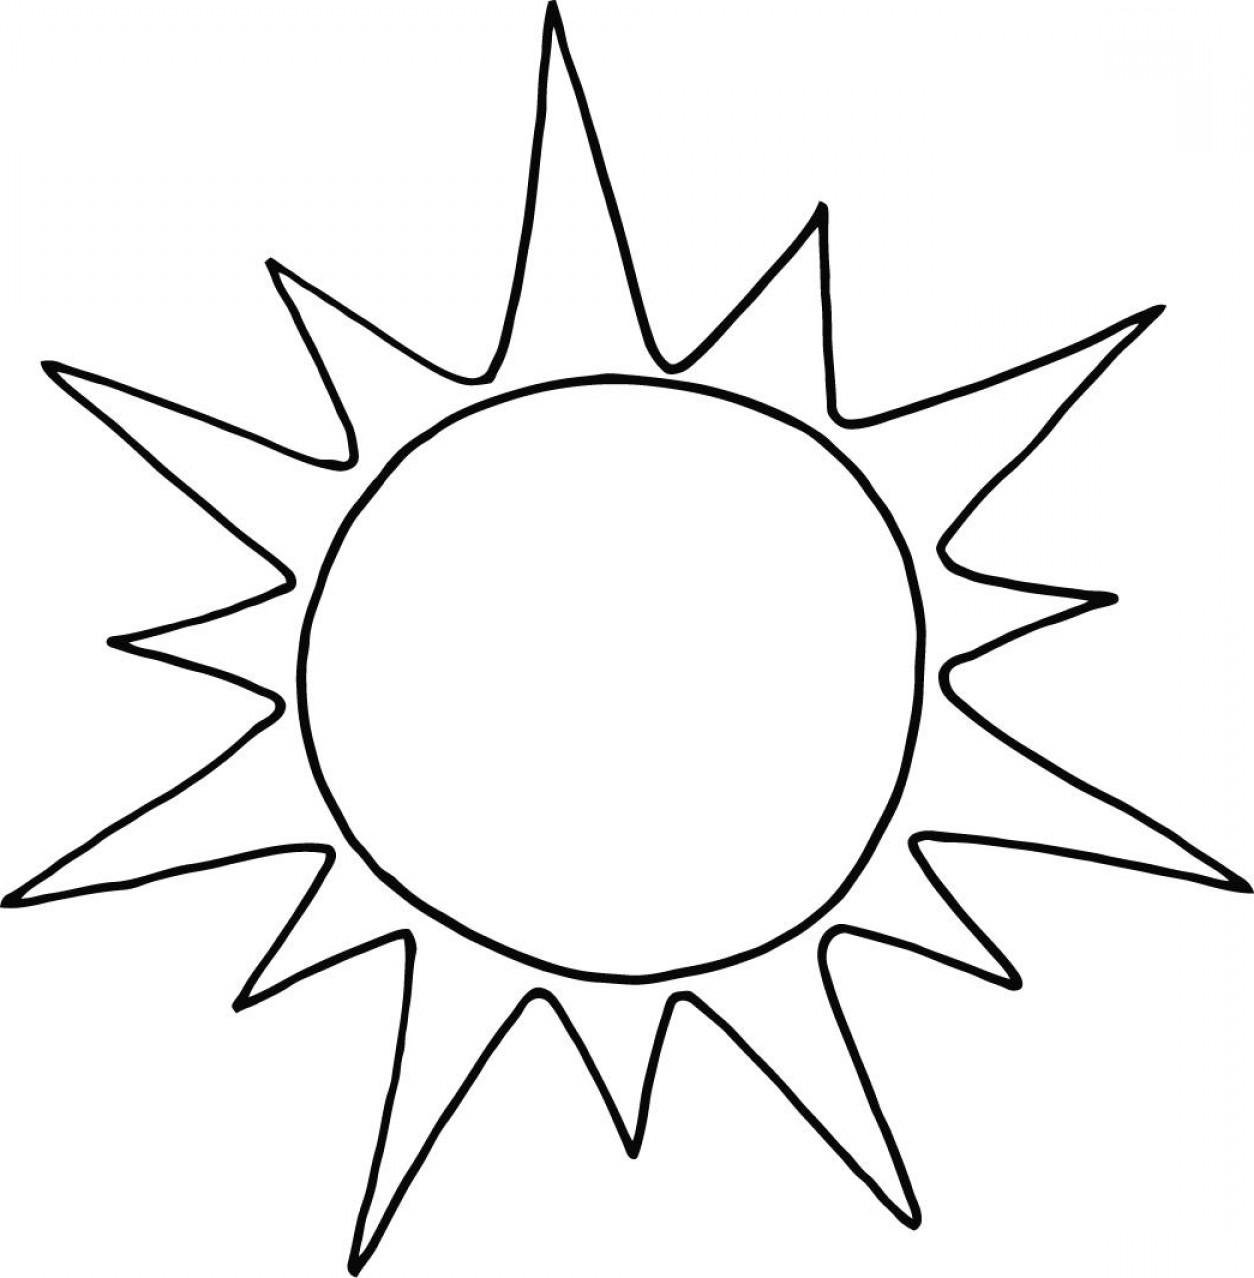 Cute Sun Clip Art Black And White Excell 804965 Png Images Pngio